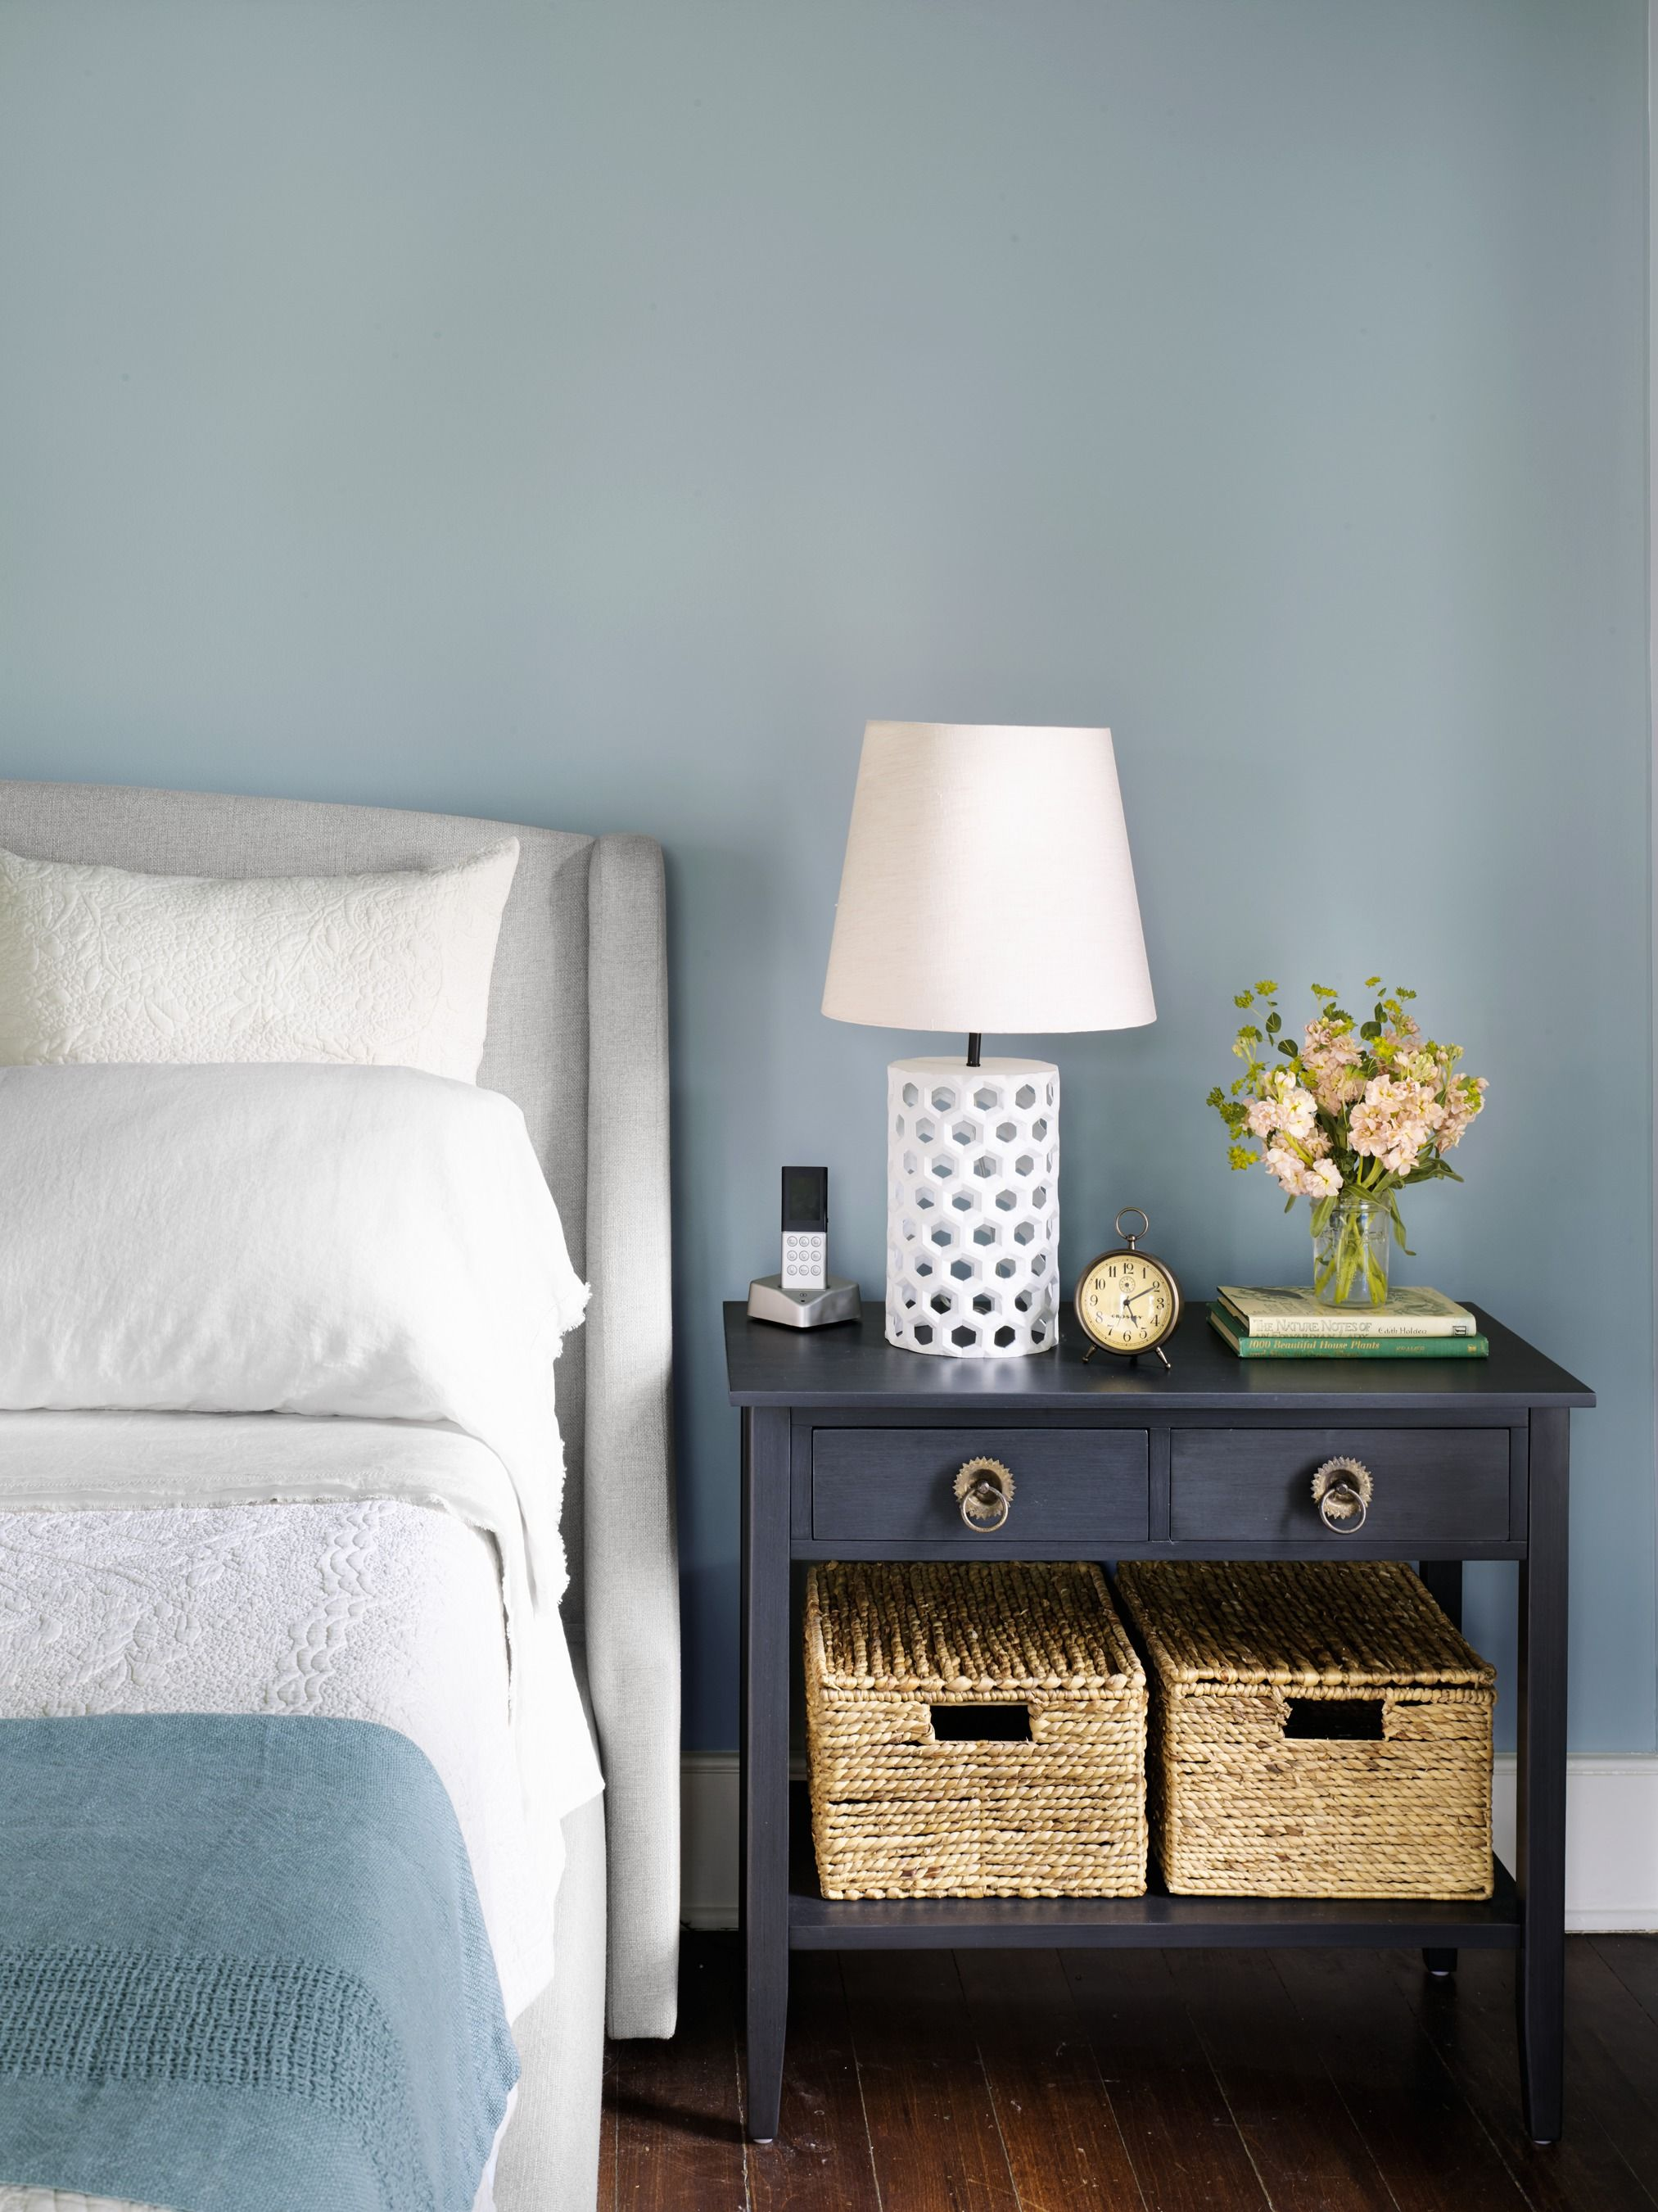 Image of: 20 Guest Room Ideas Small Guest Bedroom Decor